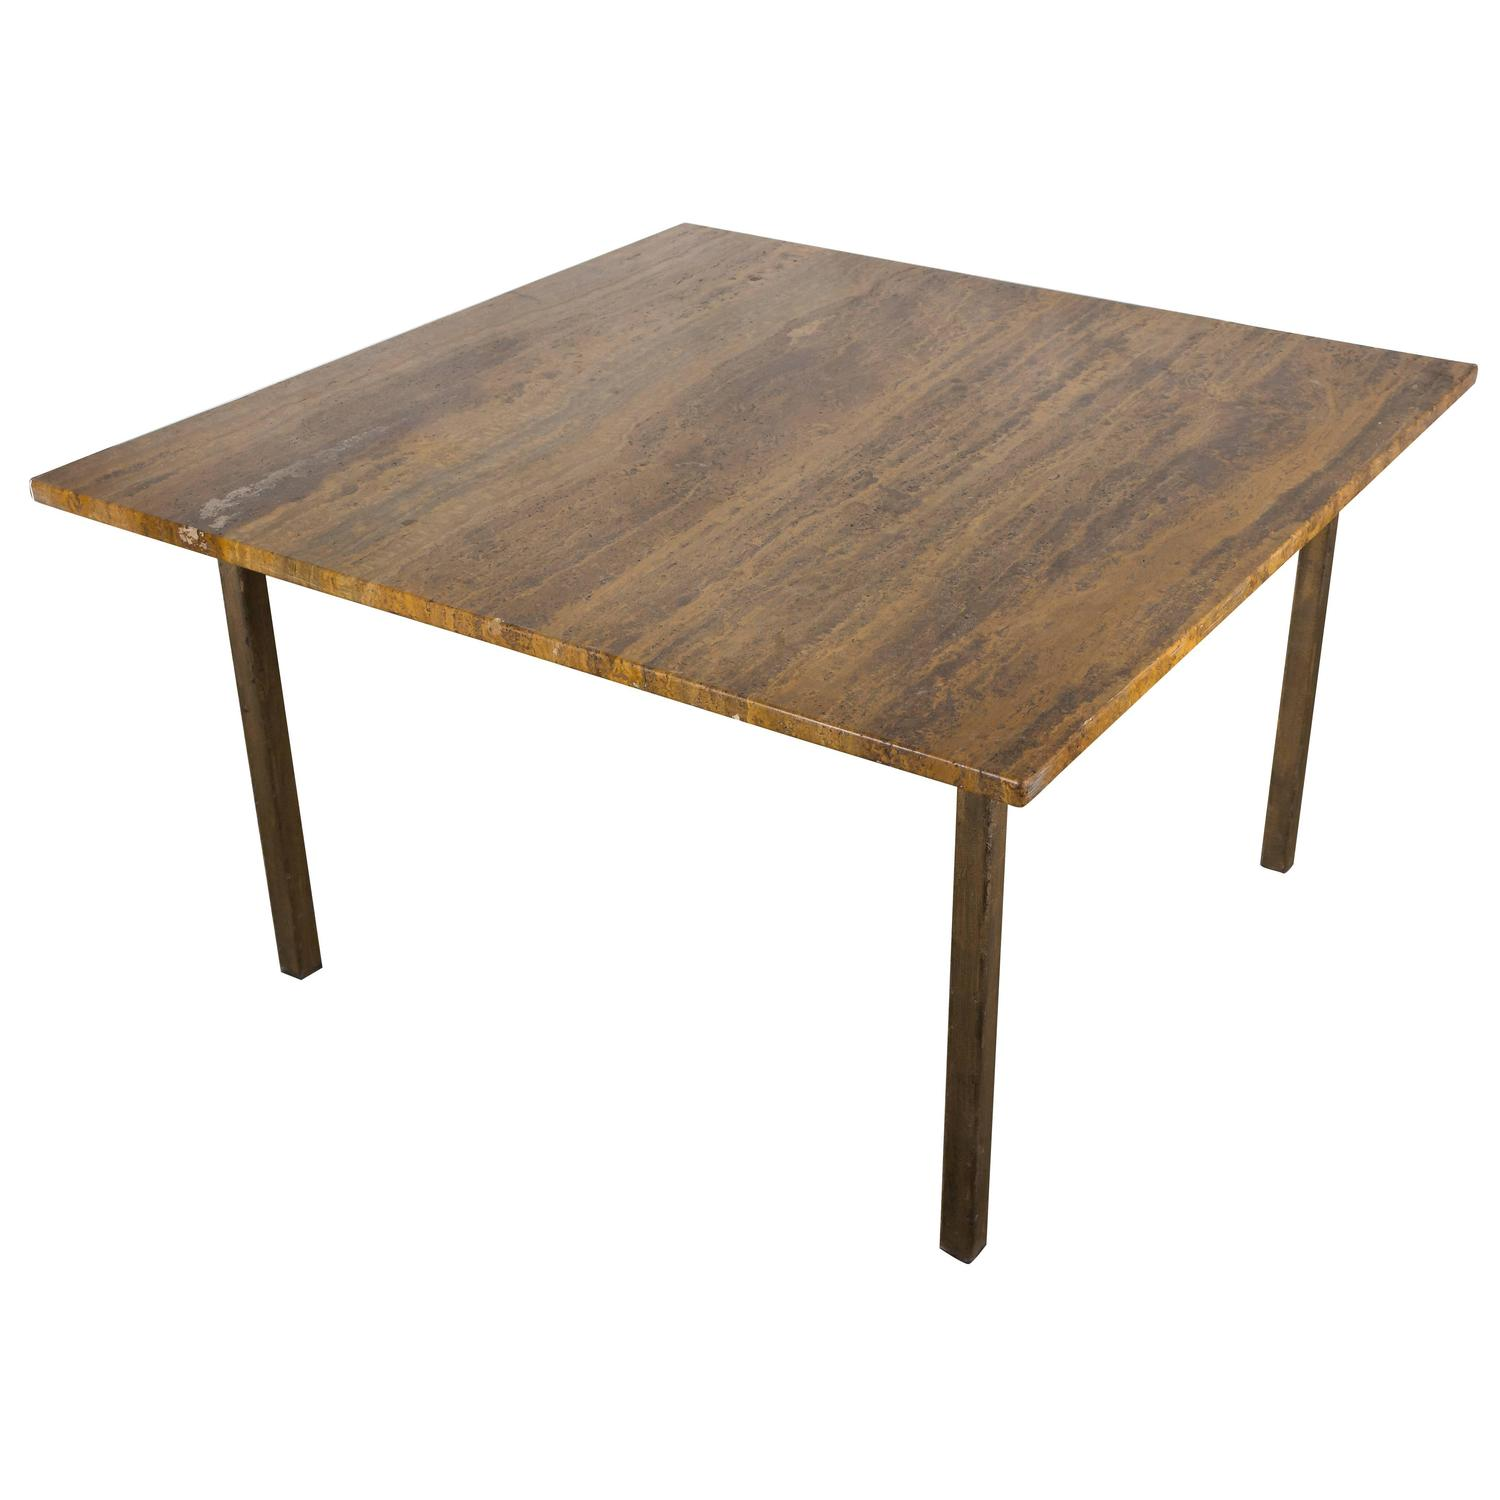 Modern square coffee table for sale at 1stdibs for Modern coffee table sale